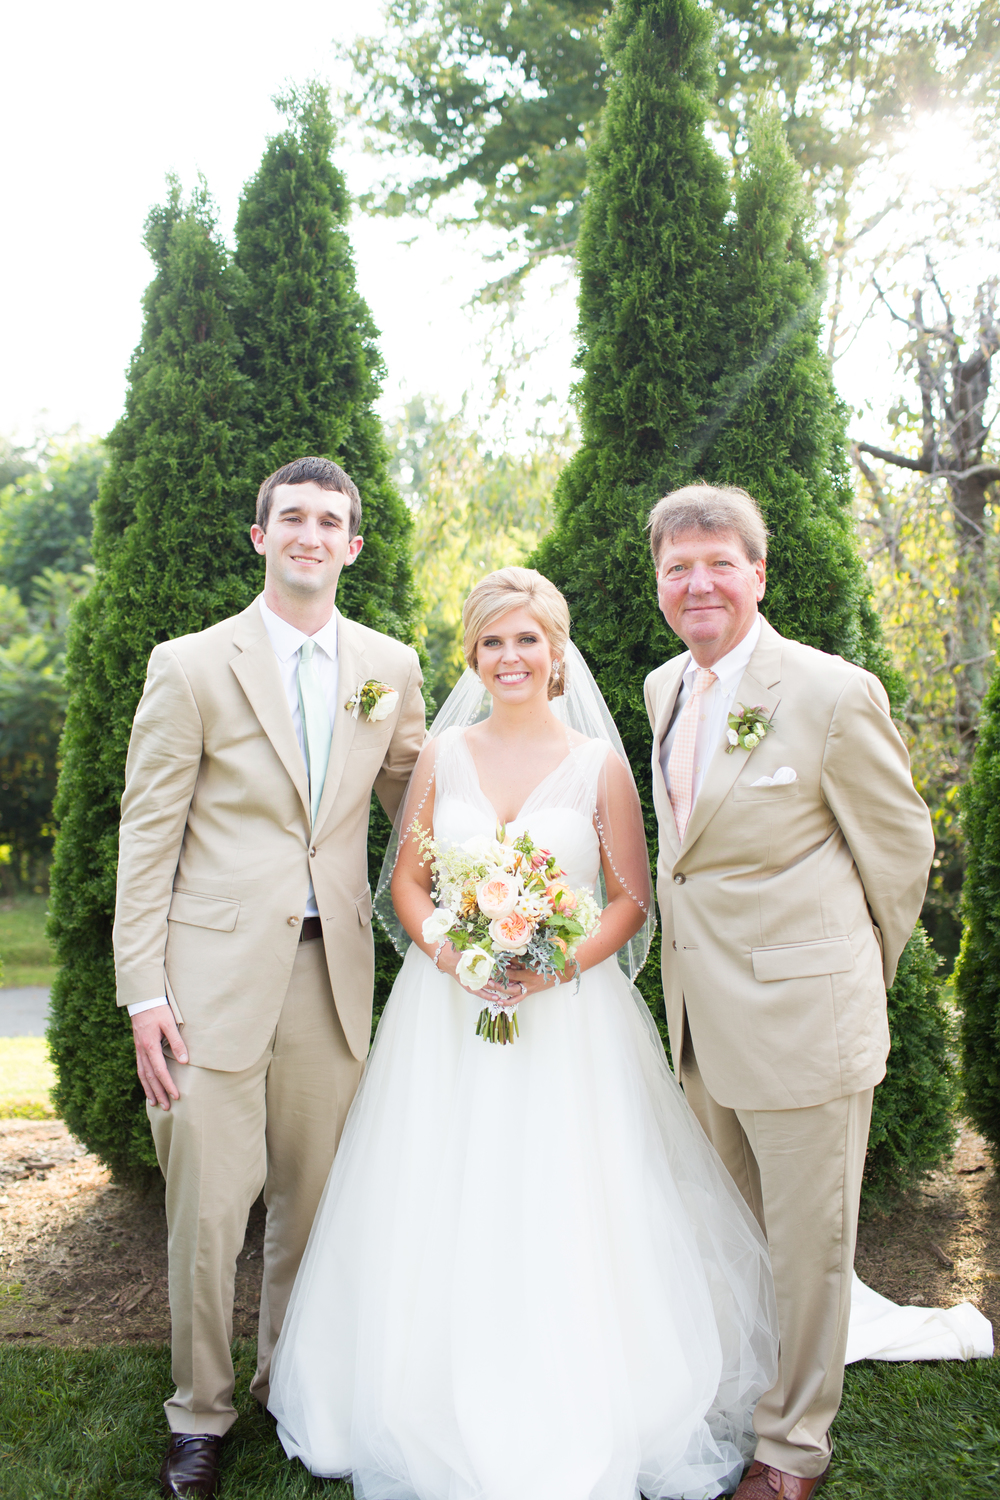 MelissaJoy Photography Boone Wedding.jpg